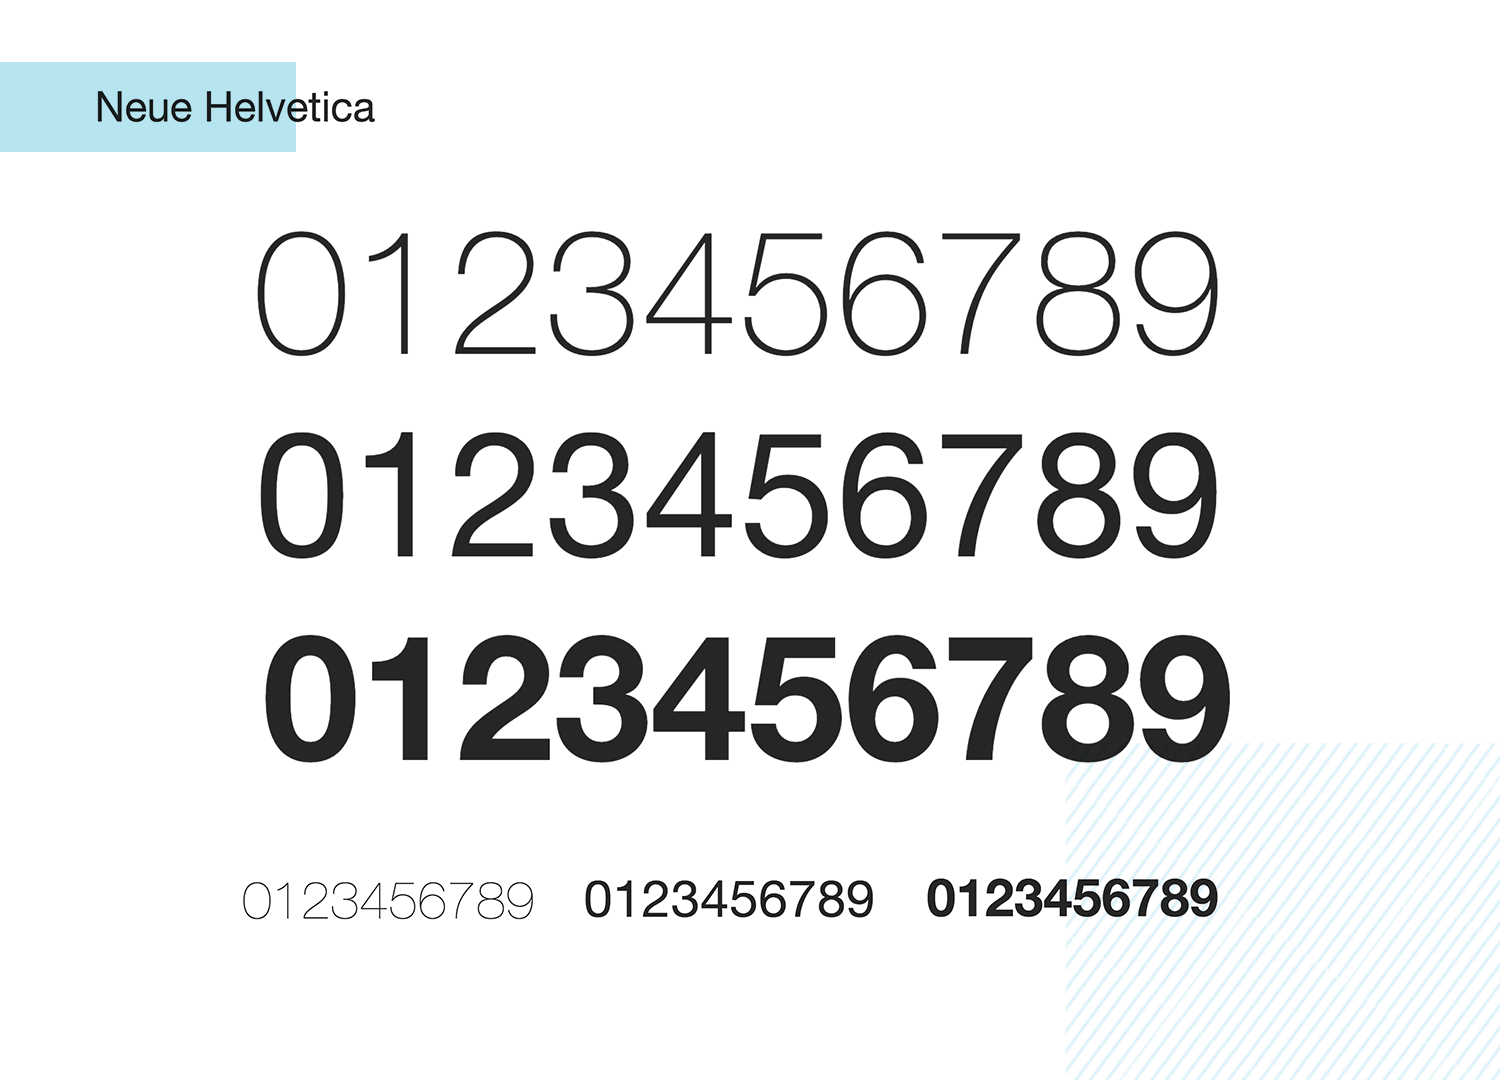 neue helvetica as classic number font - paid